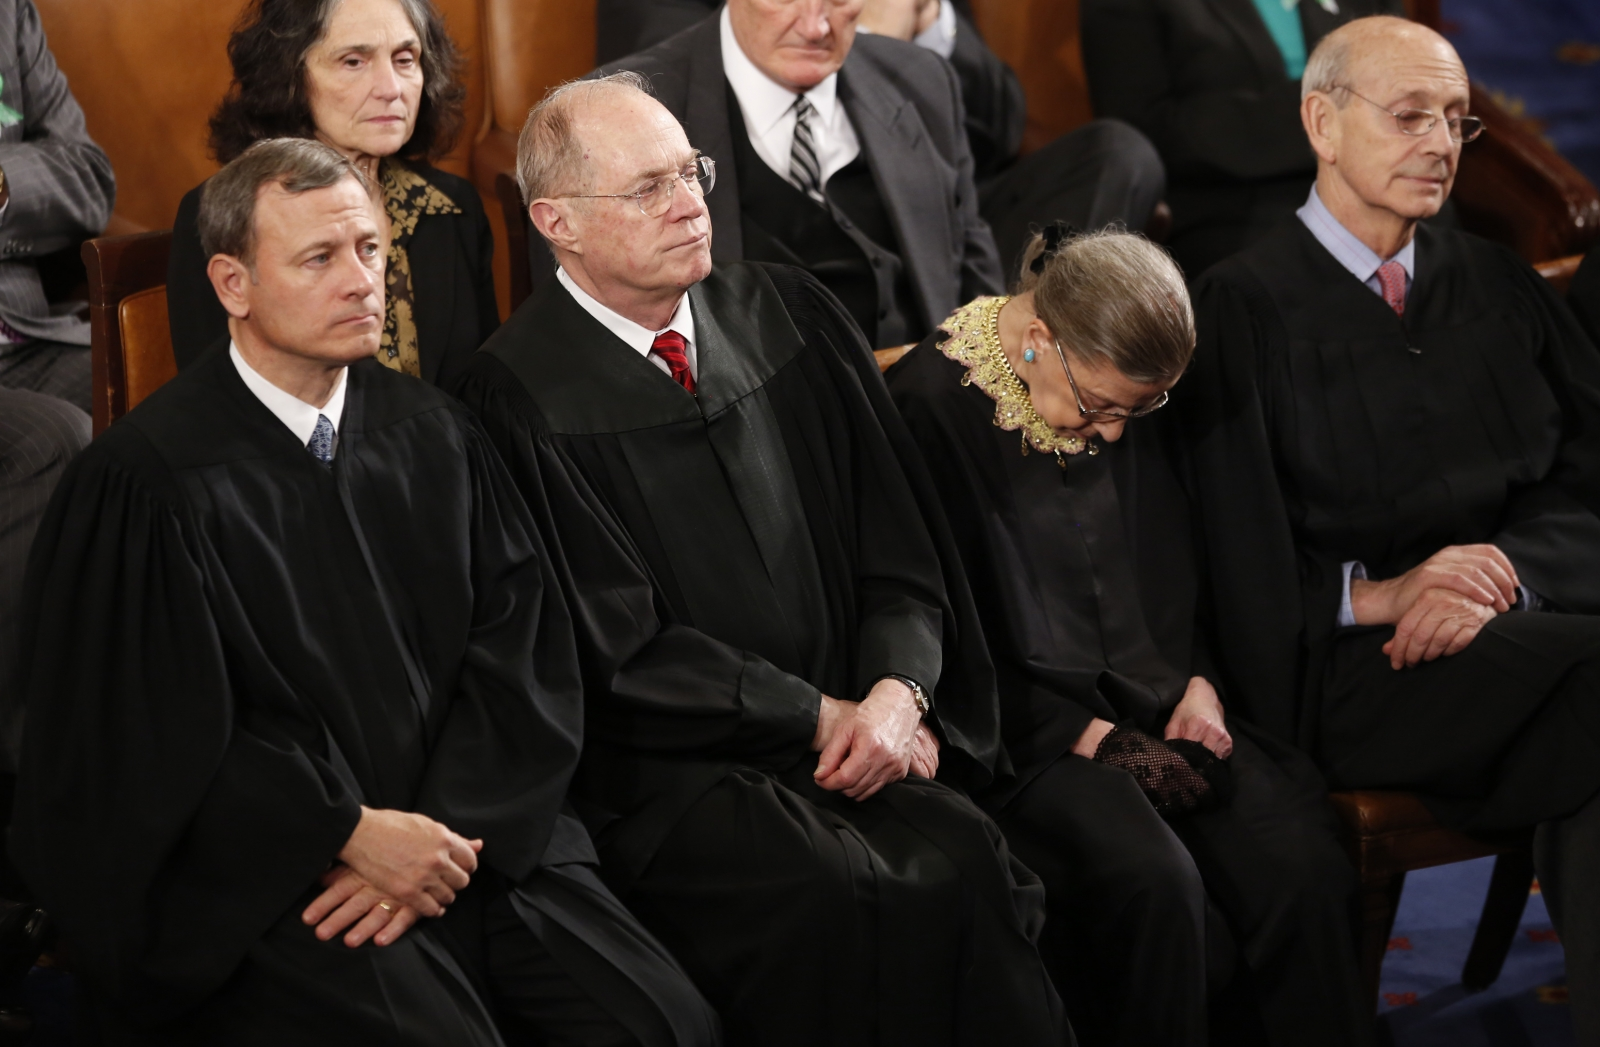 US Supreme Court Chief Justice Ruth Bader Ginsburg nods off as US President Barack Obama delivers his State of the Union speech